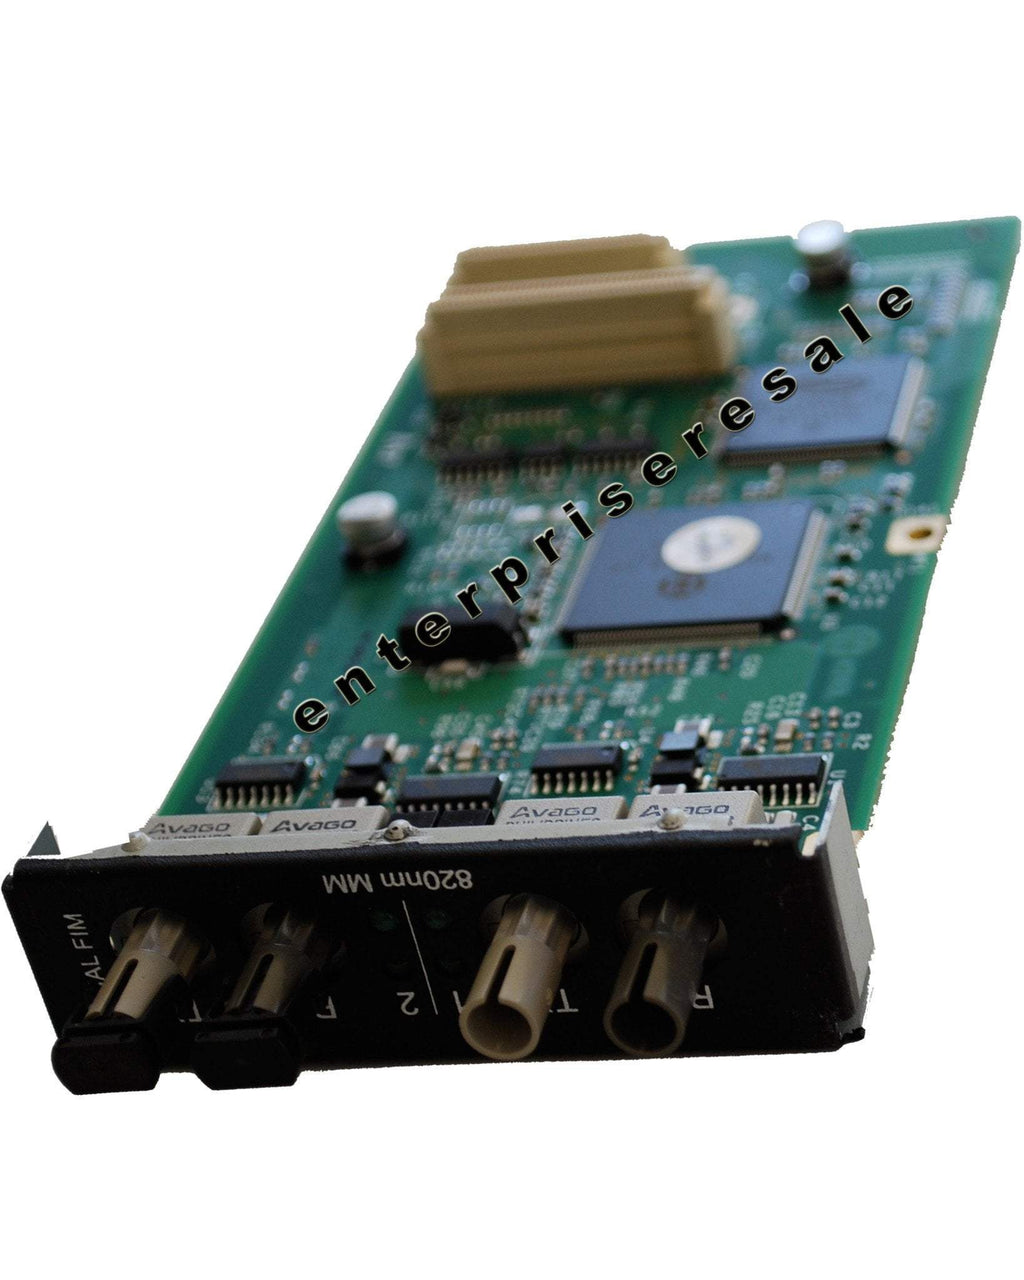 Enterprise Resale Phone Switching Systems, PBXs Mitel (50001248) Dual FIM Fiber Interface Module 820nm MM RX TX 3300